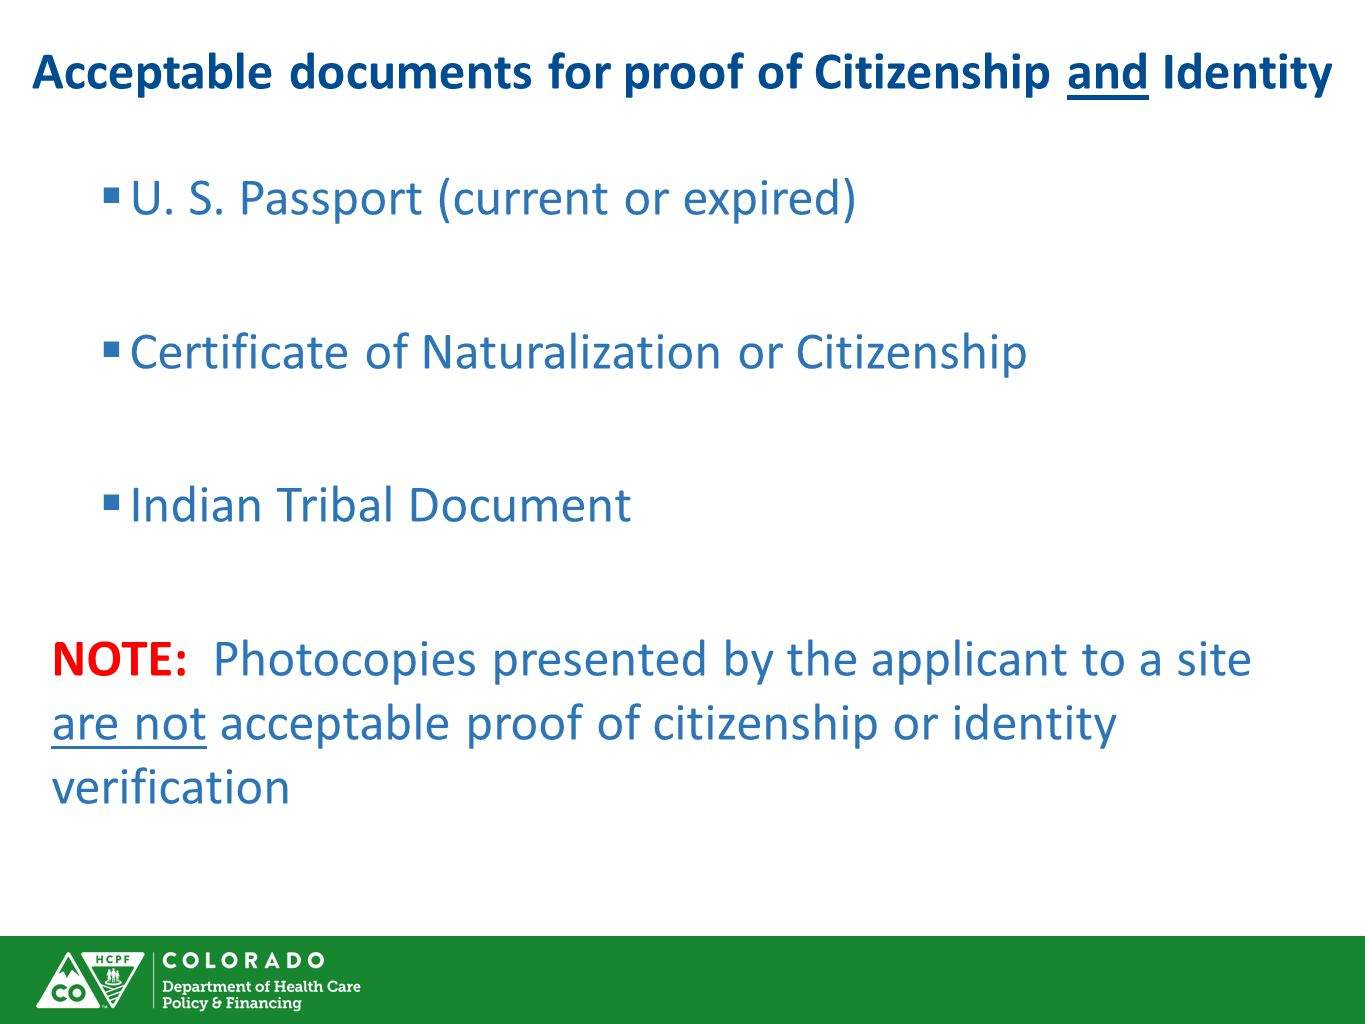 Acceptable documents for proof of Citizenship and Identity